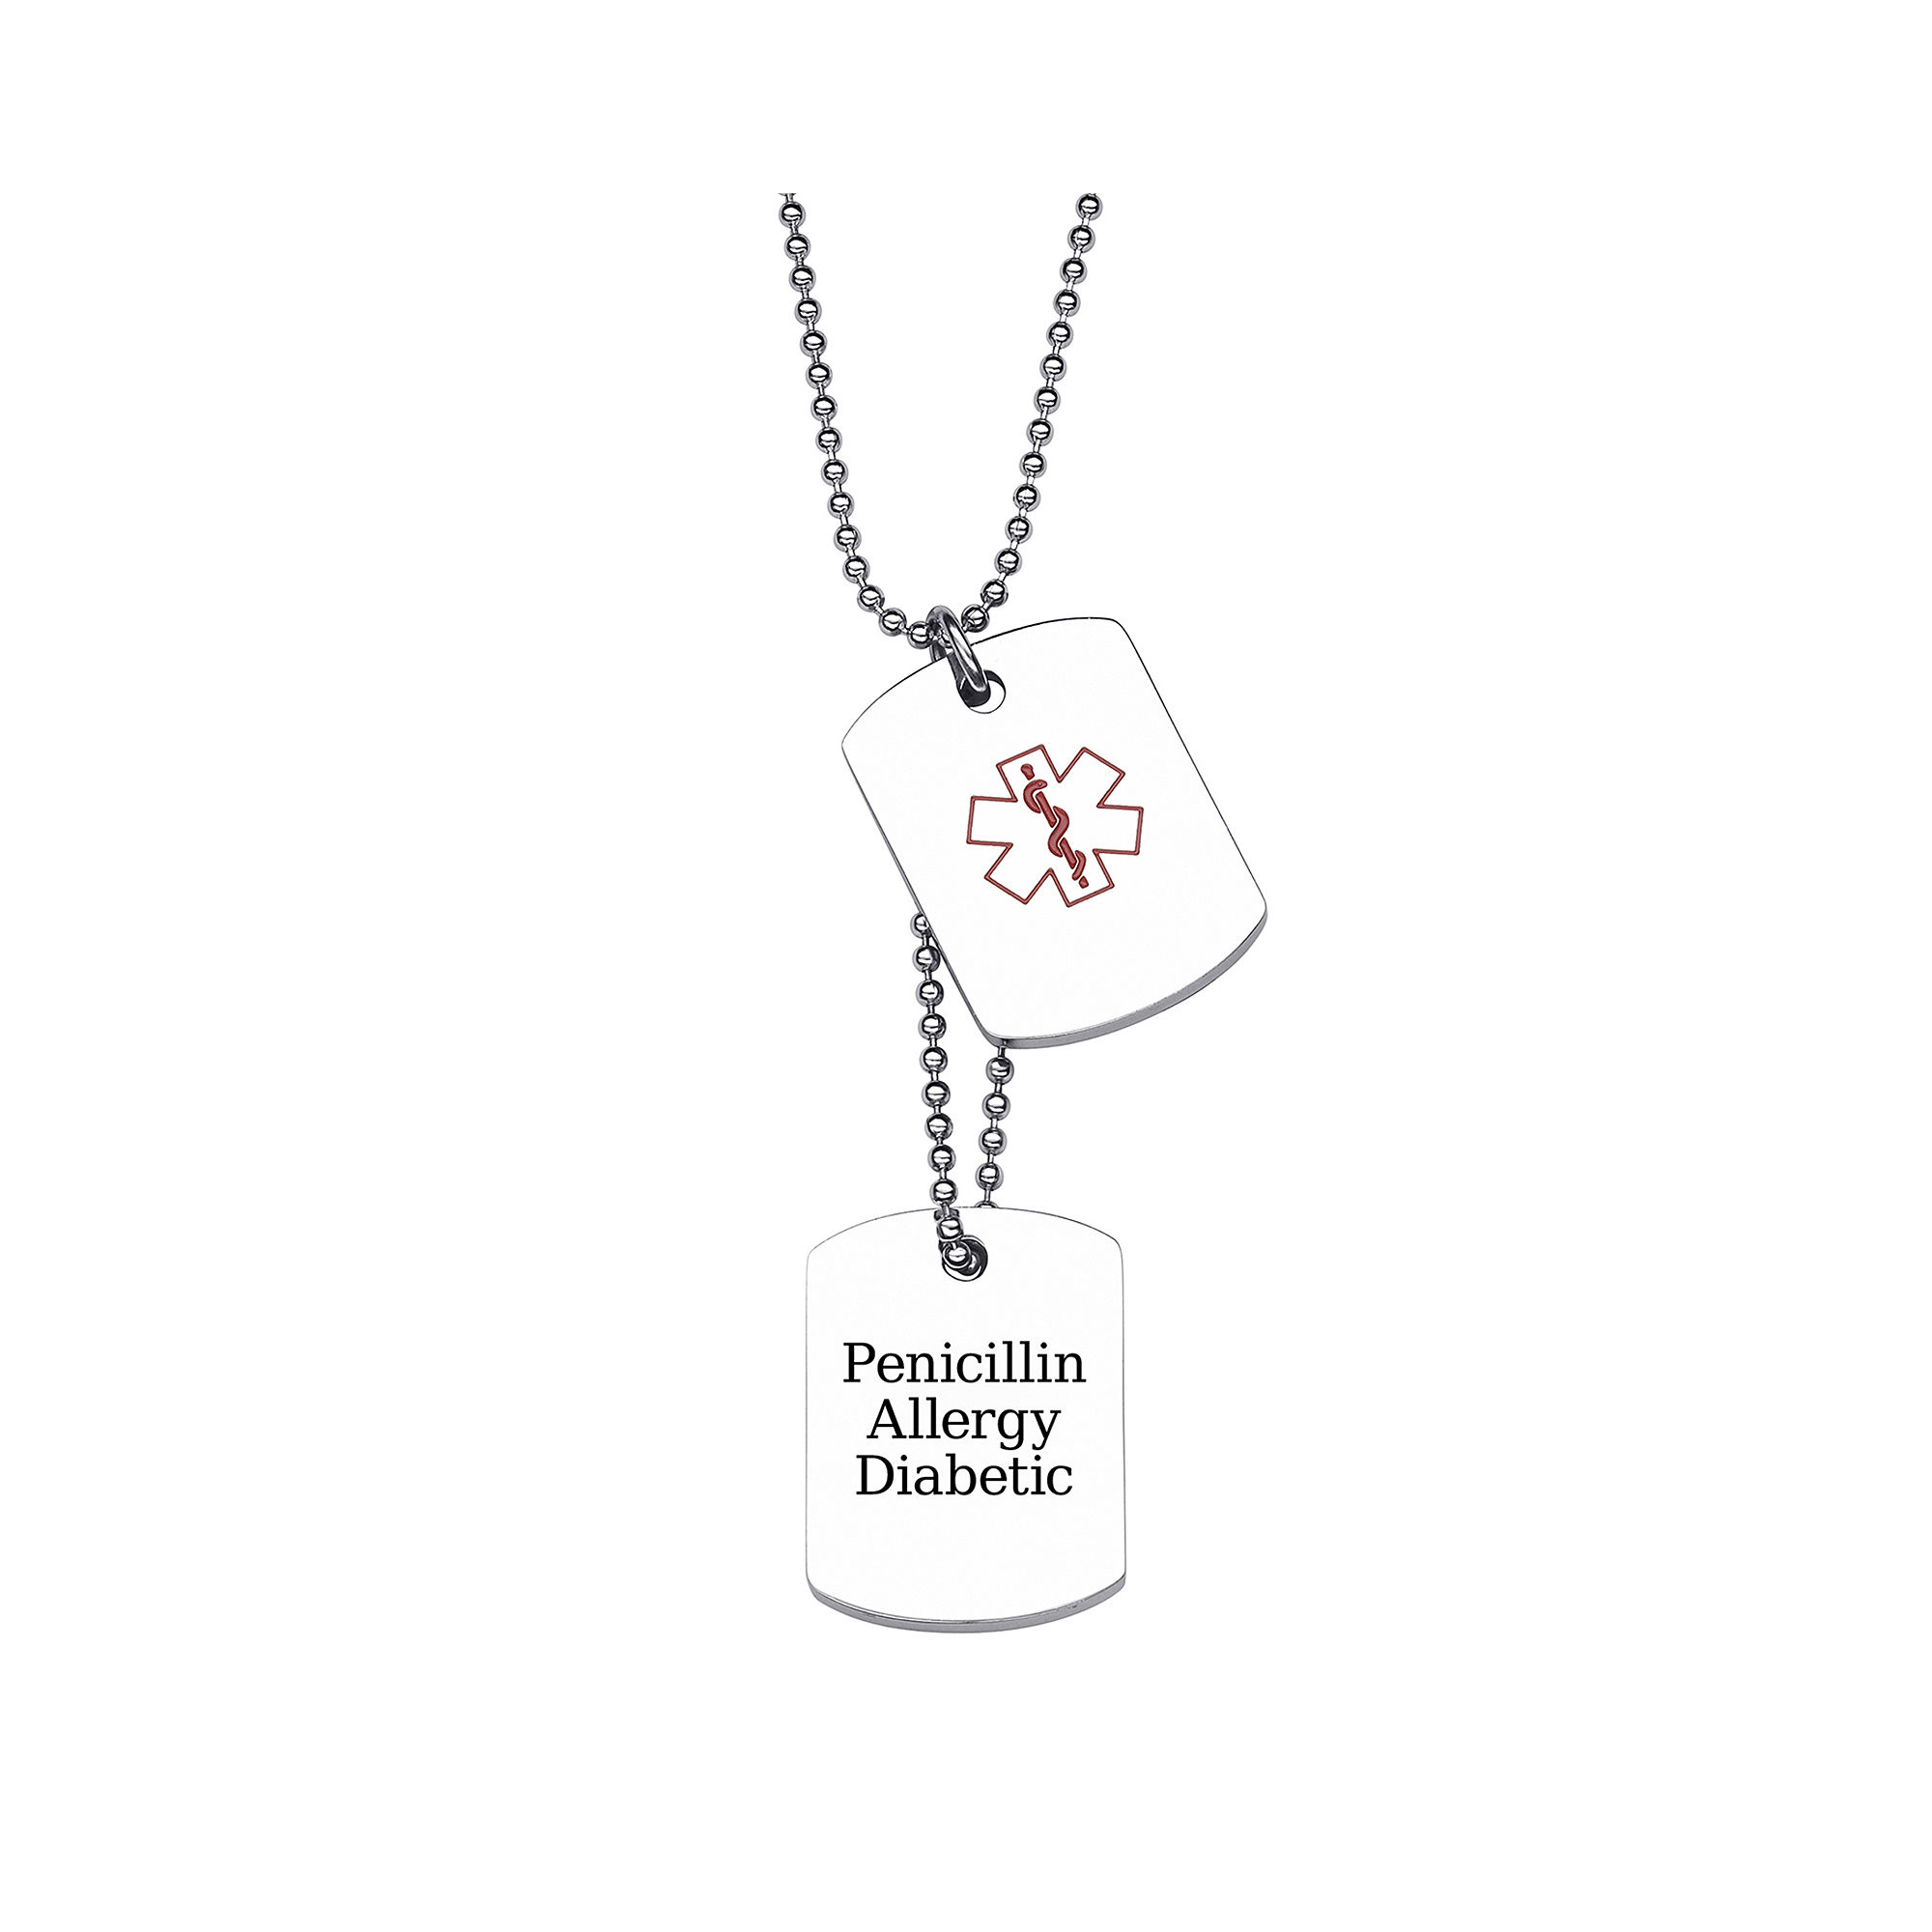 Personalized Stainless Steel Double Dog Tag Medical ID Pendant Necklace